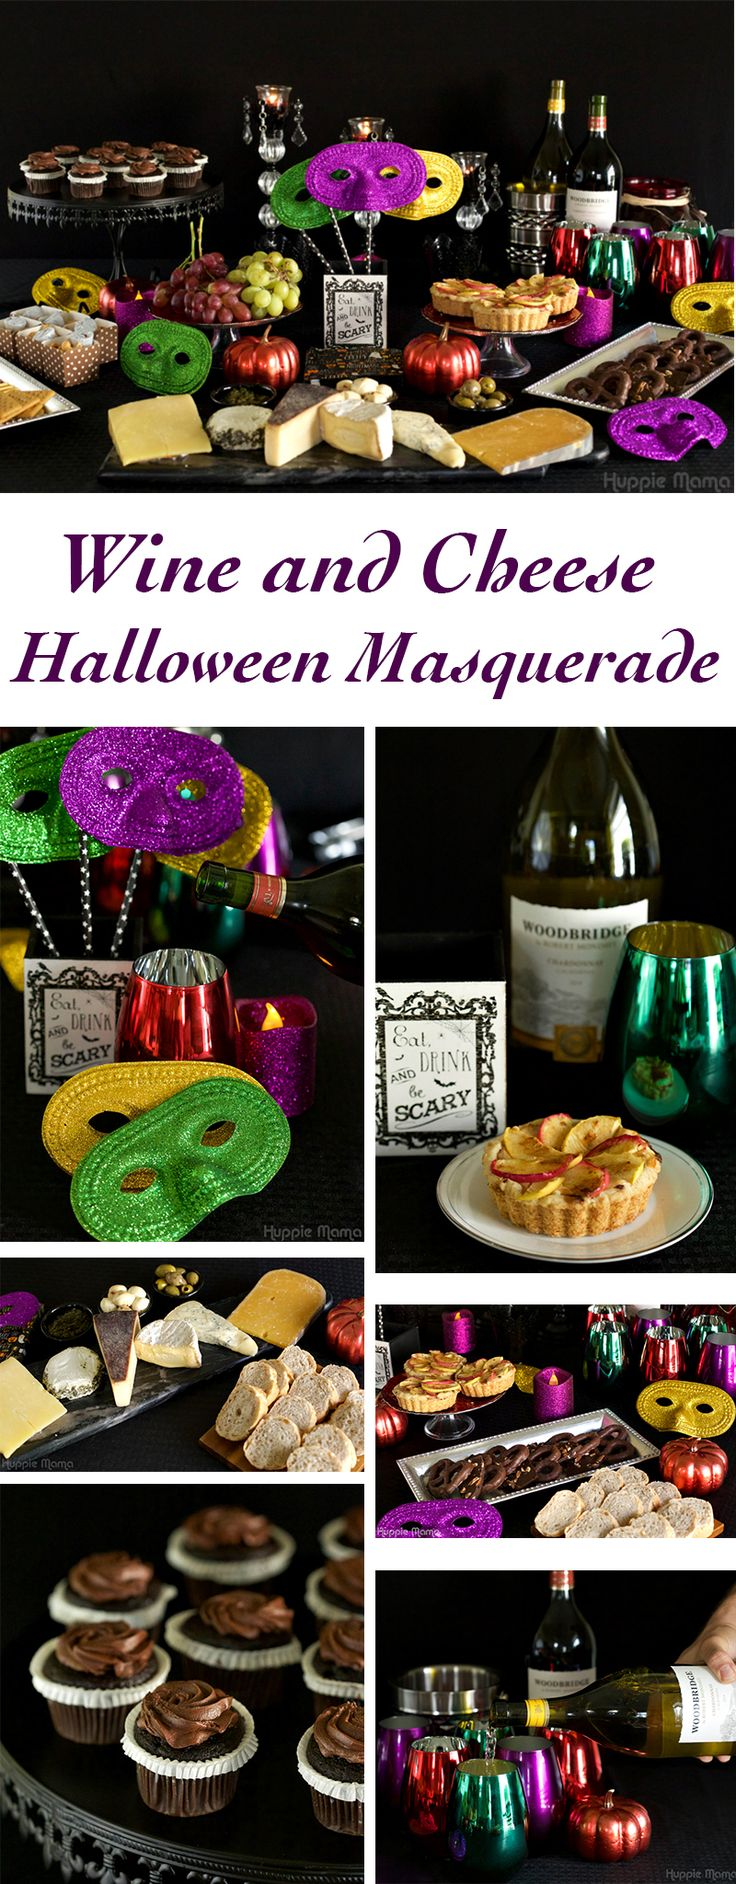 1000+ images about Halloween Party Ideas on Pinterest | Halloween ...